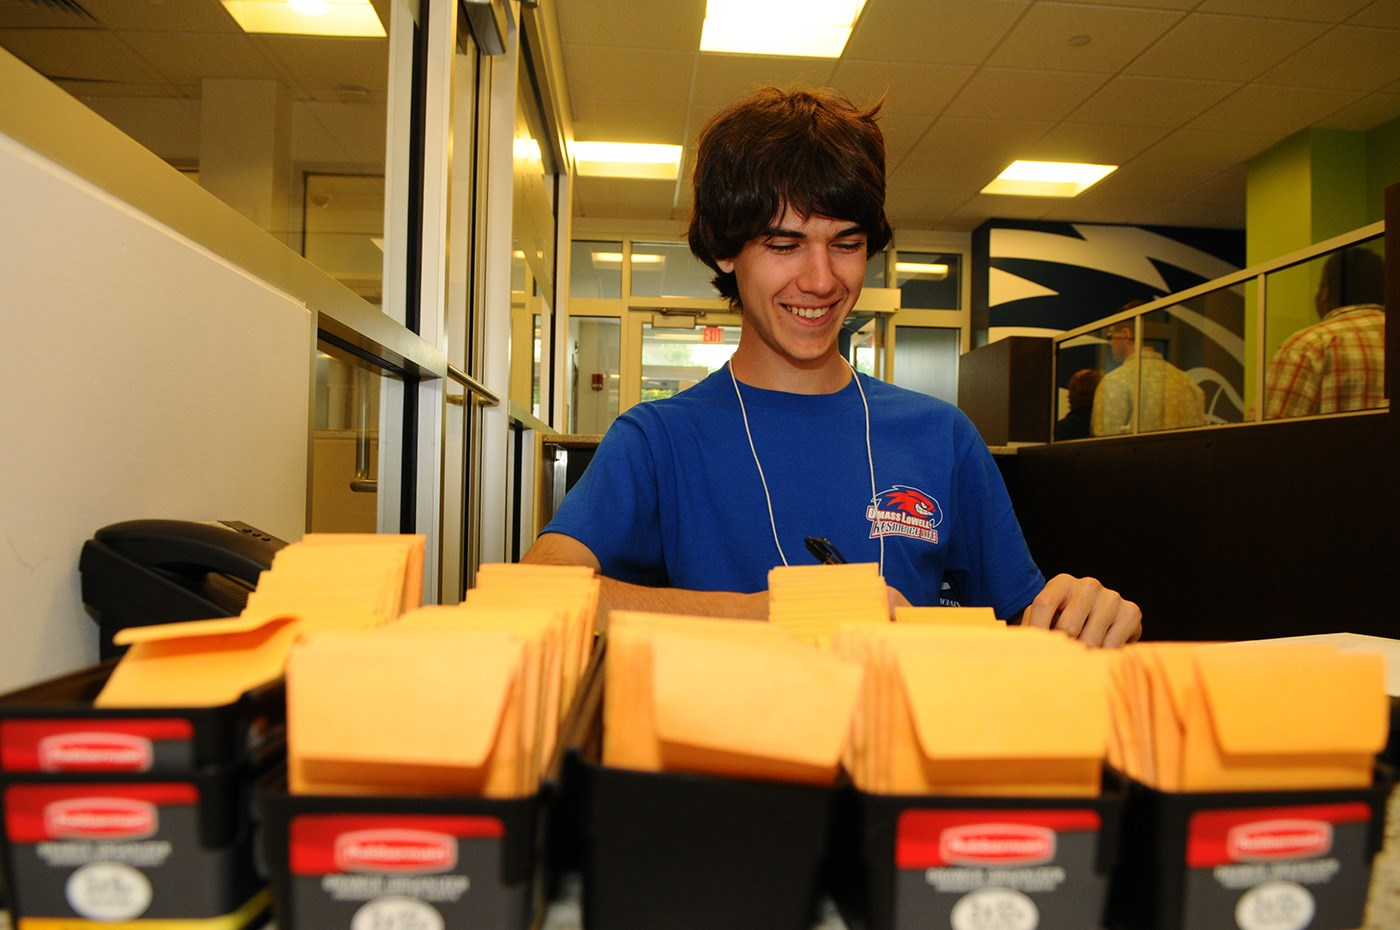 A male reslife student sorting envelopes.